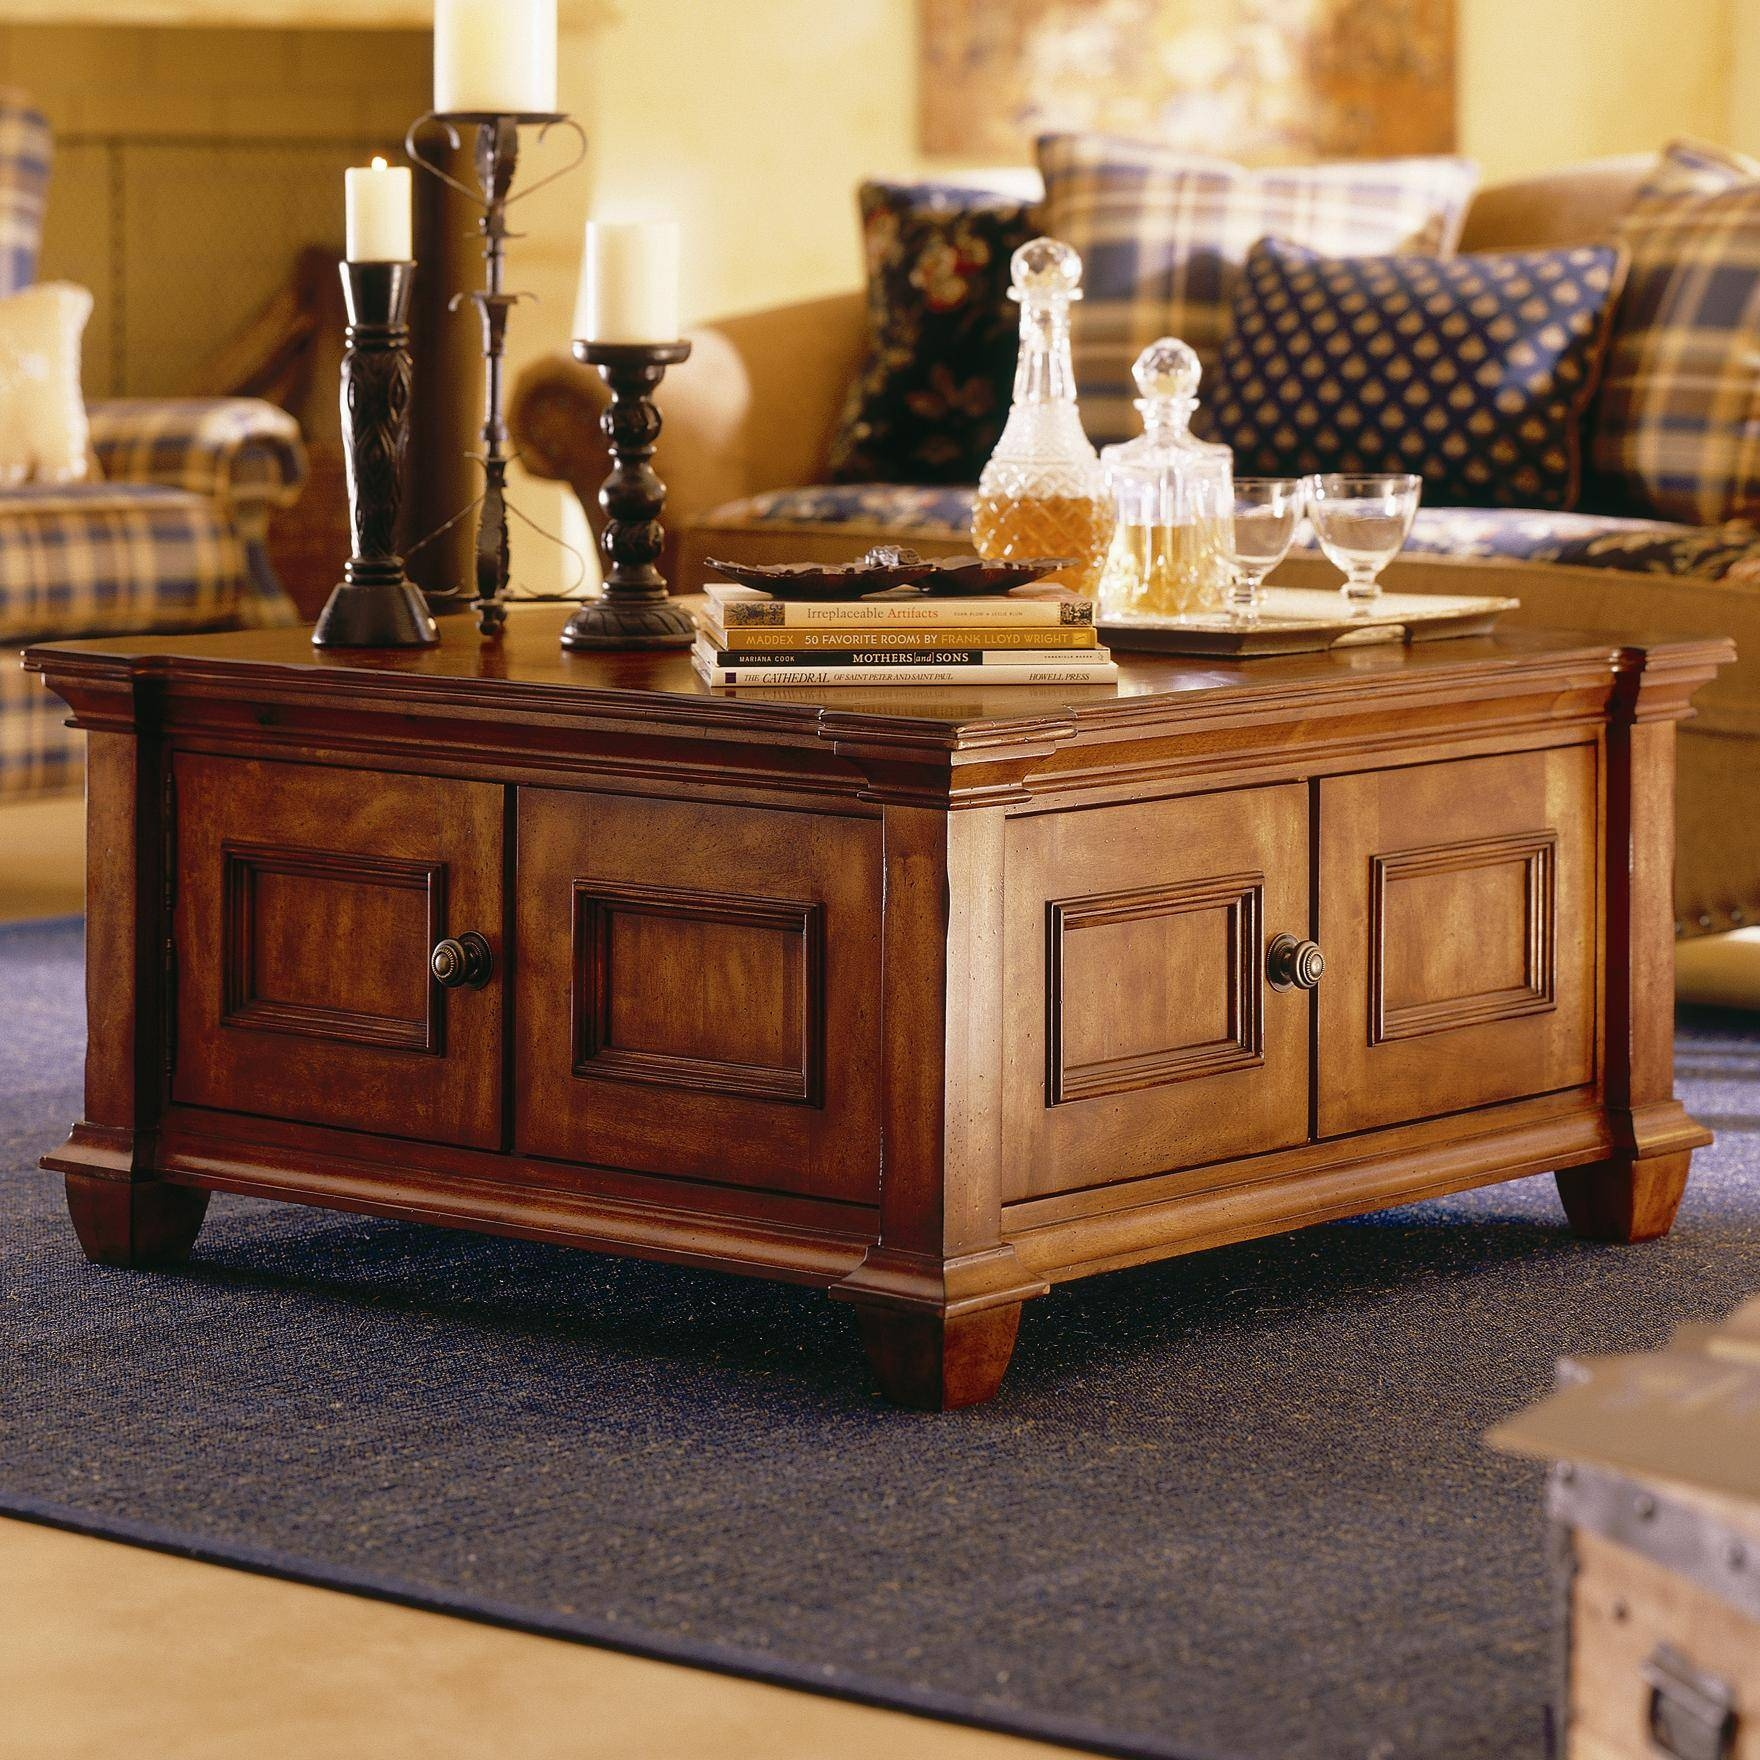 Coffee Tables: Cool Coffee Tables With Storage Ideas Distressed inside Hardwood Coffee Tables With Storage (Image 8 of 30)